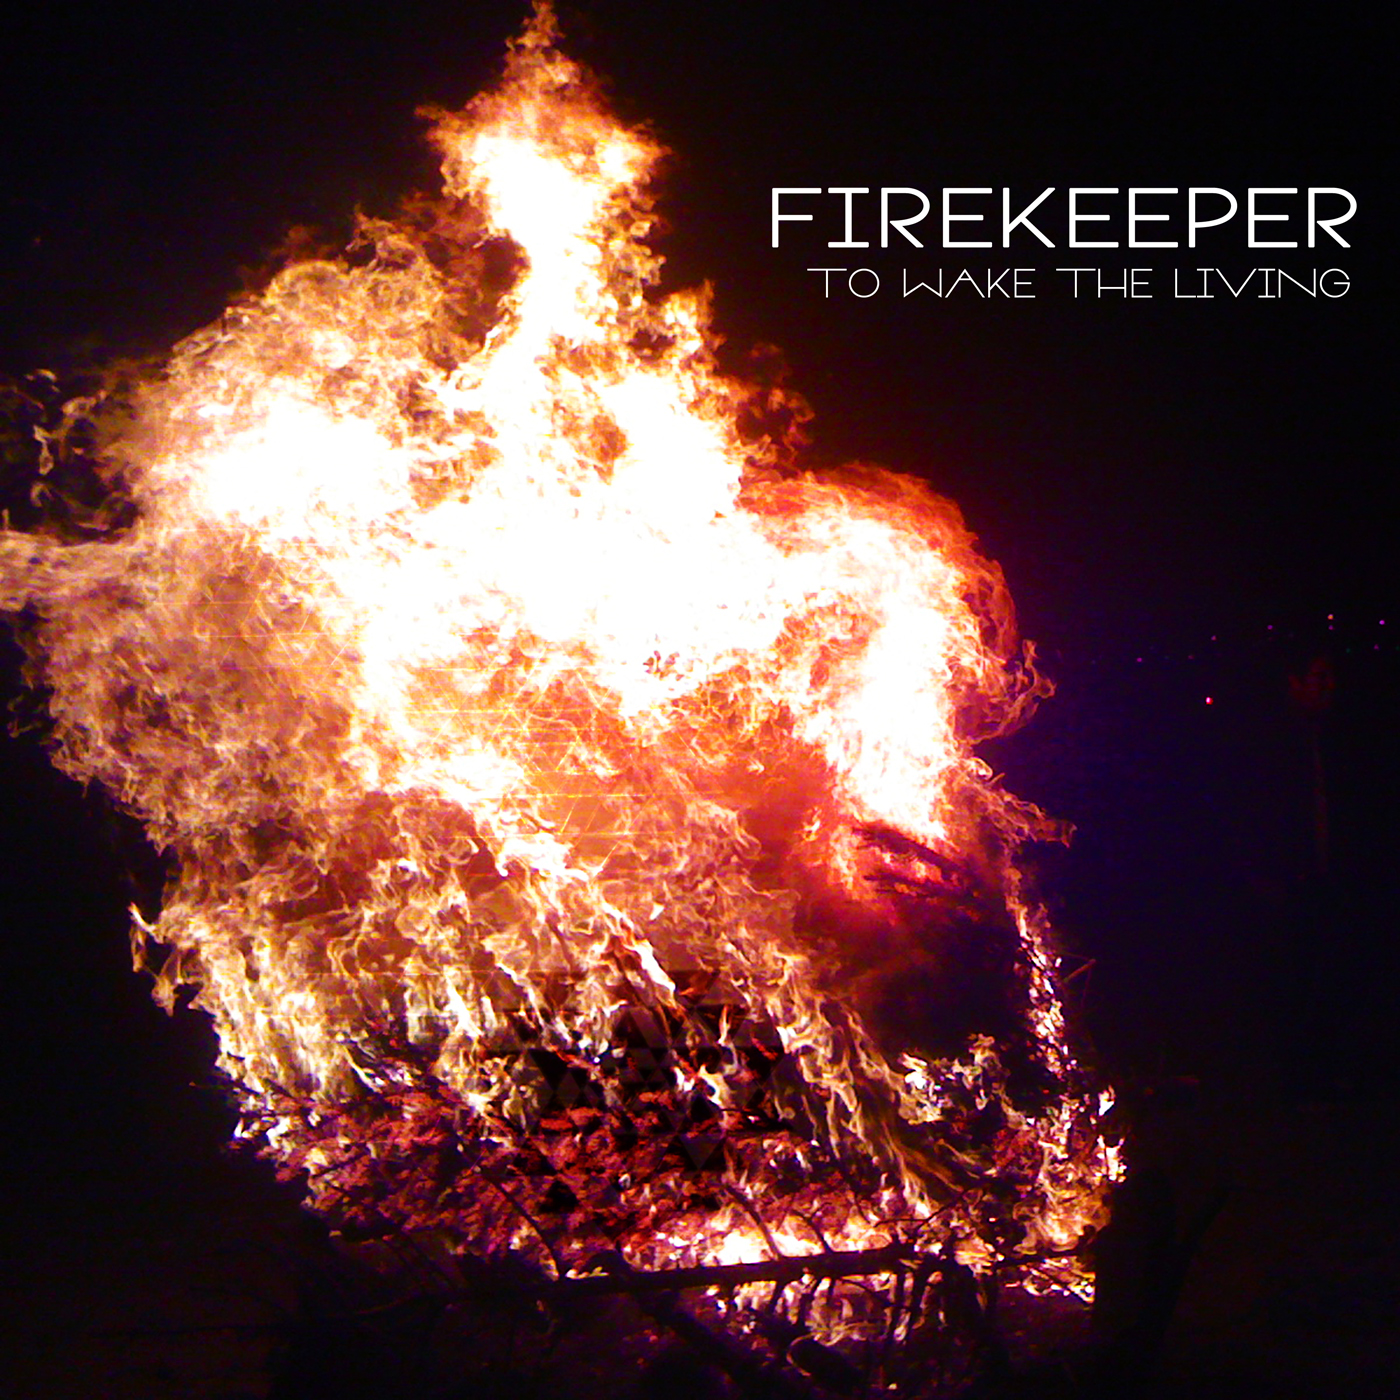 """TO WAKE THE LIVING - FIREKEEPER's debut album, To Wake the Living, was self-produced and recorded at Fonogenic Studio in LA and on """"the Pearl"""", a houseboat on San Francisco's Mission Creek. The album was released on their independent label MAKEARTNOW in October 2013. To Wake the Living's ten tracks have a live analogue intensity while integrating electronic compositions developed through experimenting in their houseboat home studio. The album was made possible with help from Rami Jaffee (Wallflowers, Foo Fighters) and engineer James McLaughlin in Fonogenic's LA-based studio."""